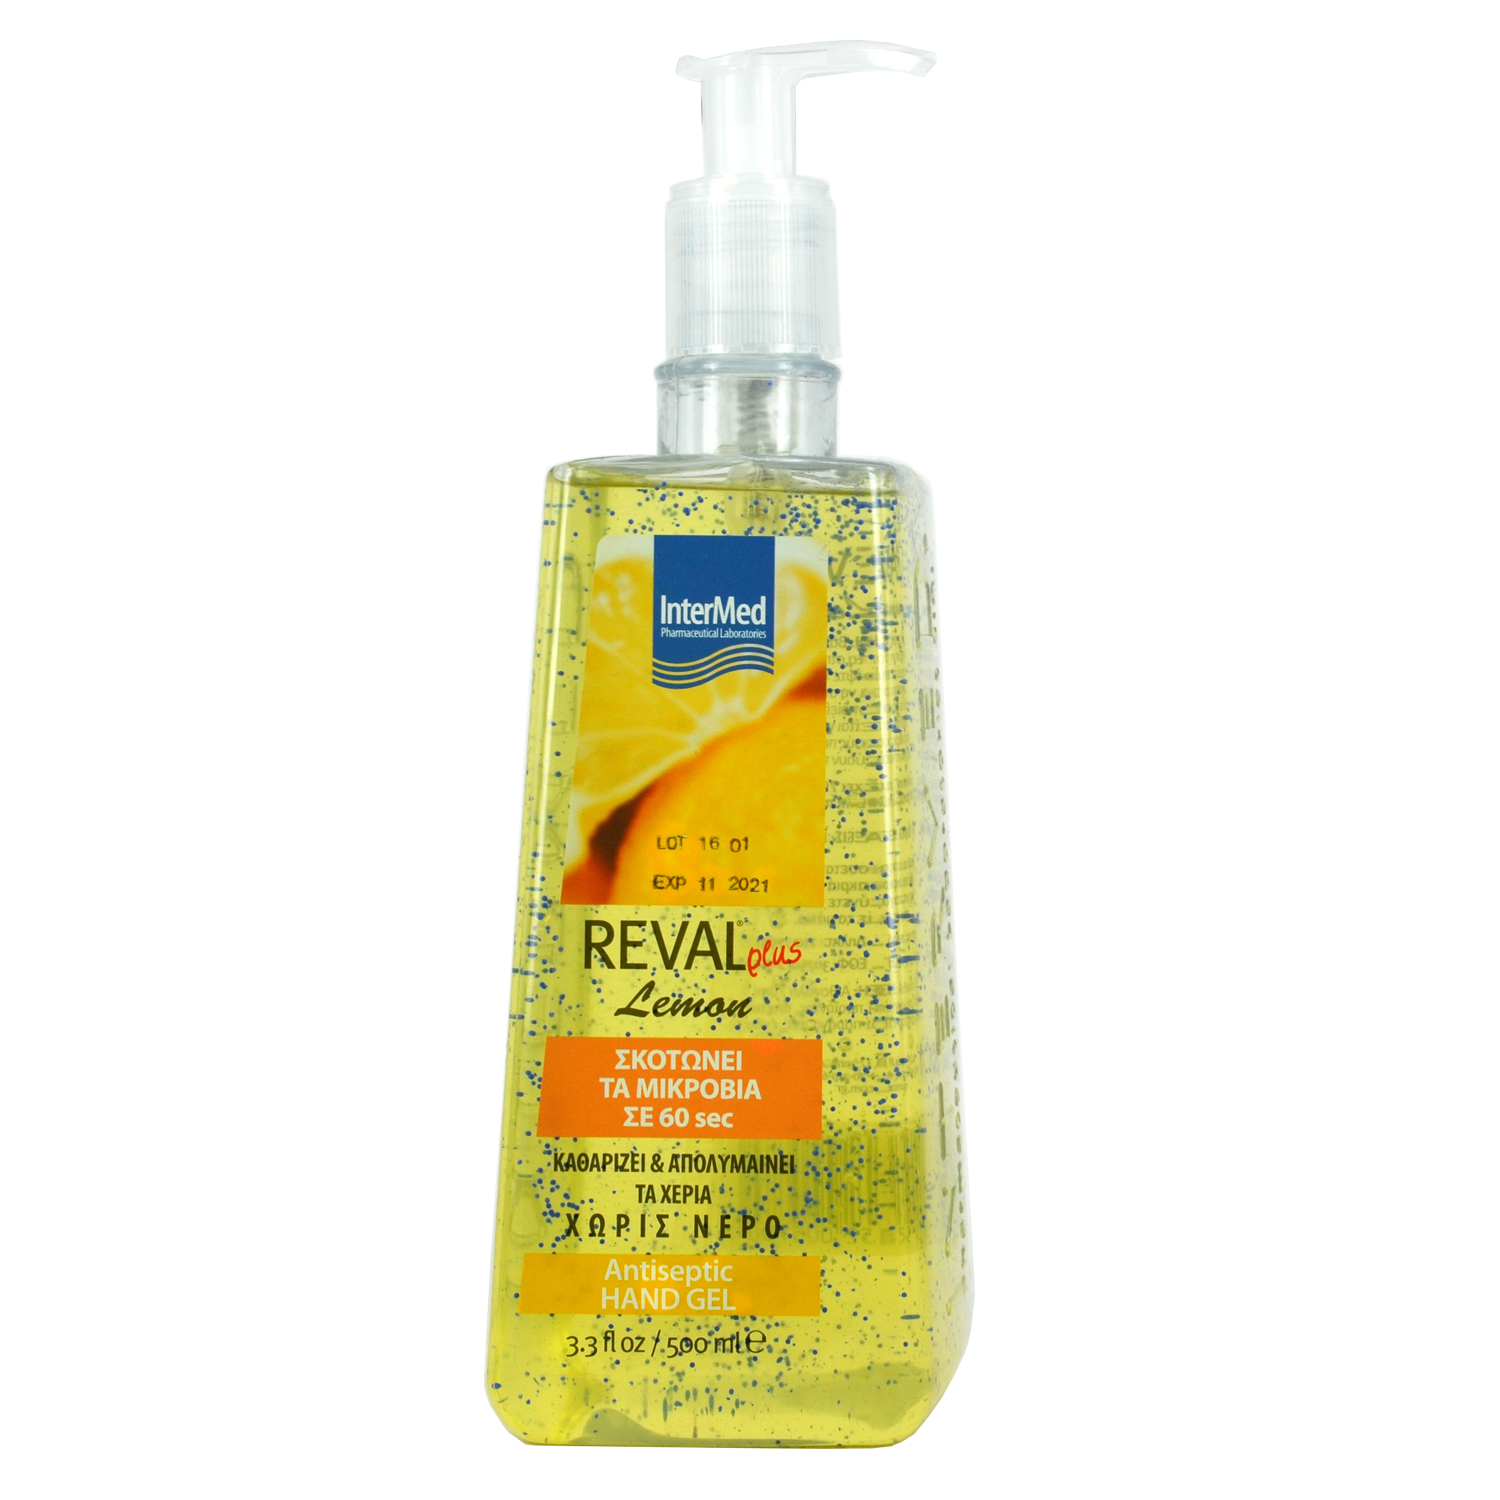 Intermed Reval Plus Lemon Antiseptic Hand Gel 500ml